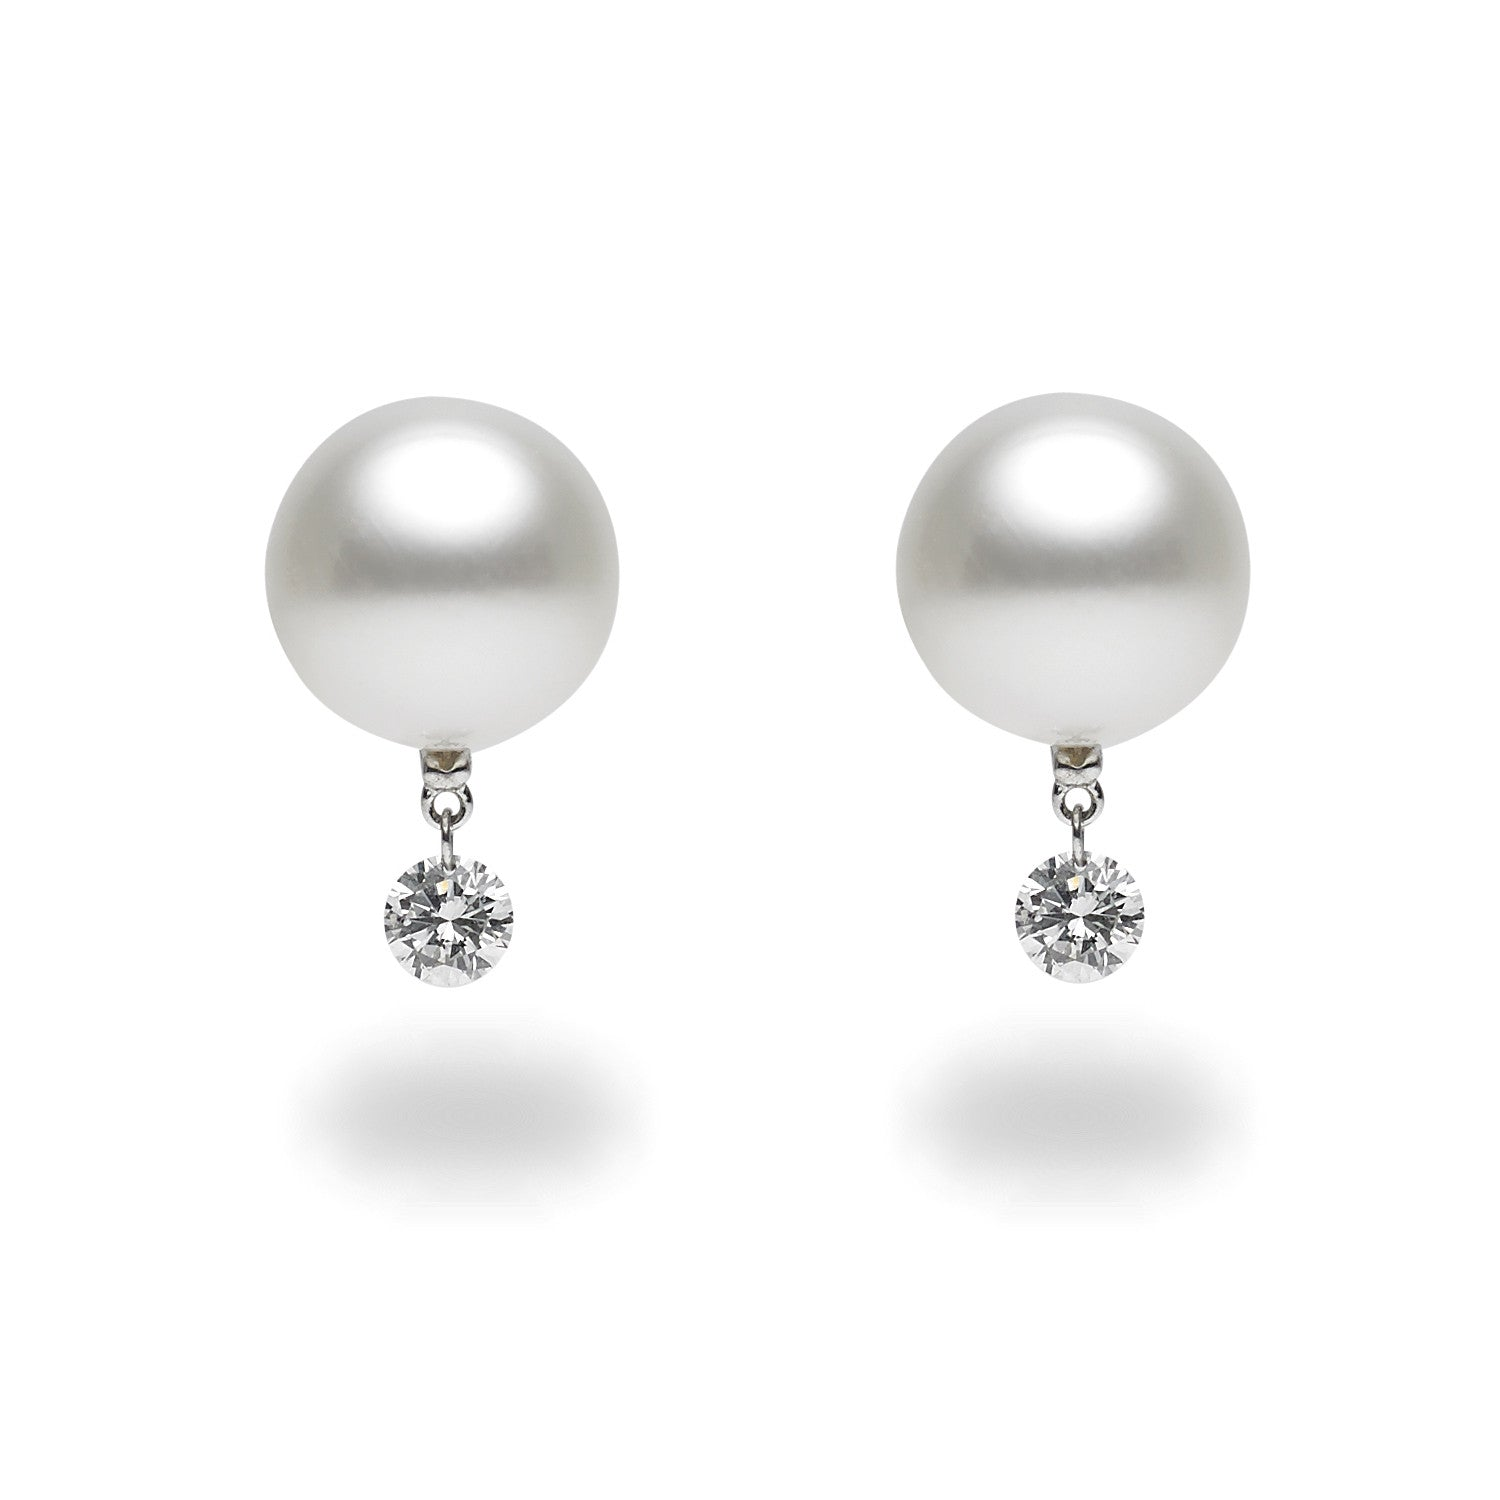 Dancing Diamond™ Collection 1011mm White South Sea Pearl And Diamond  Earrings